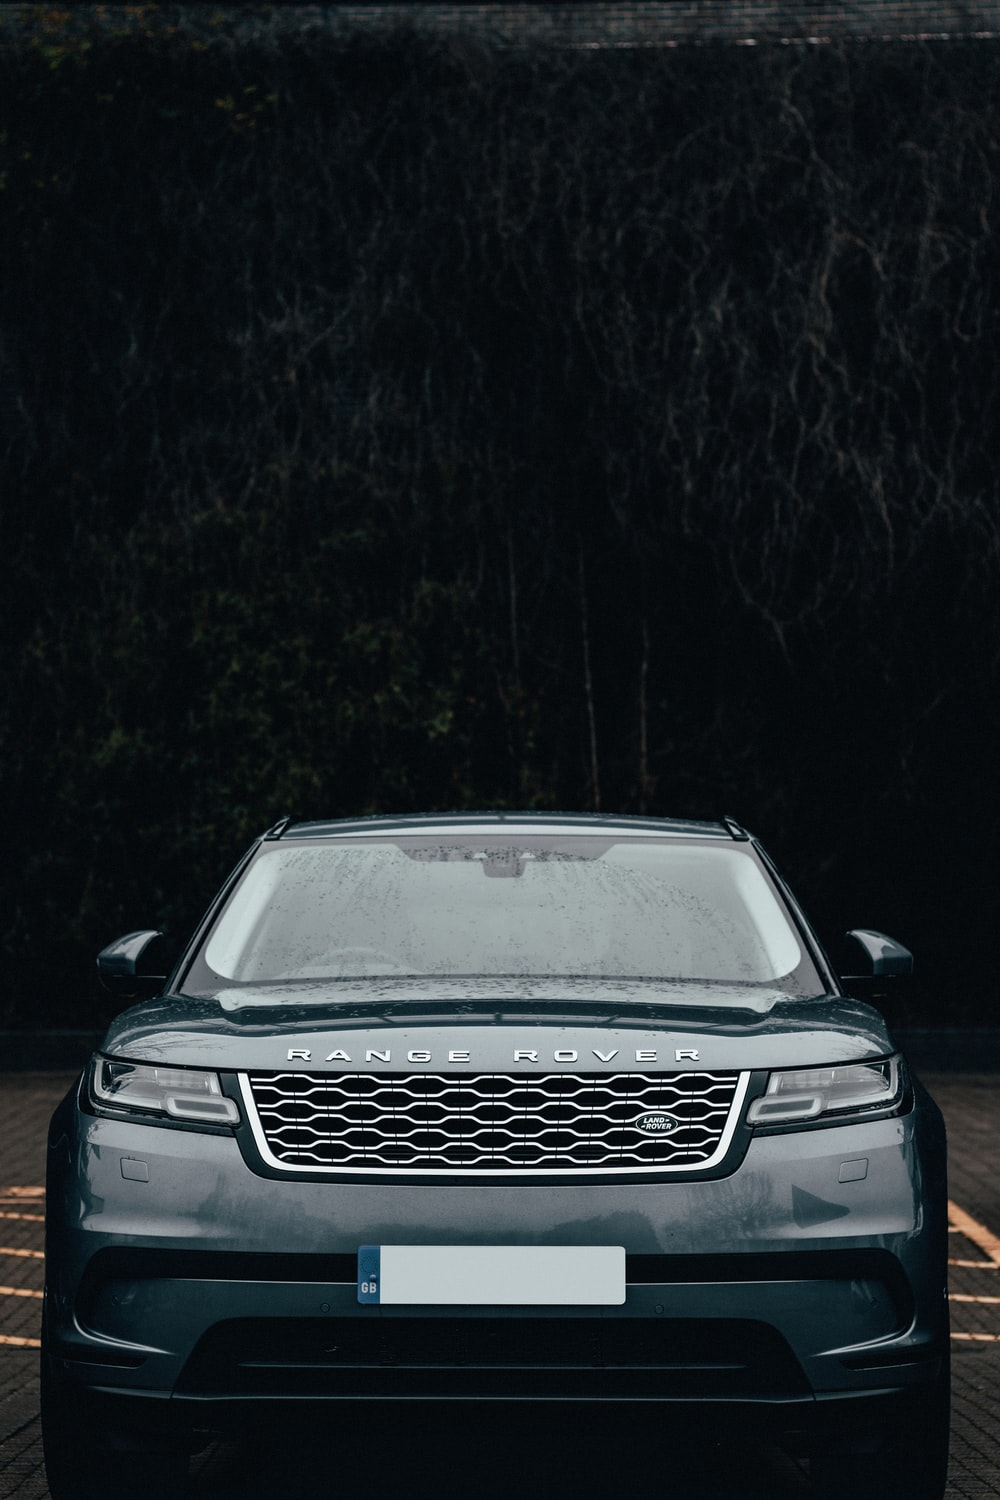 black car in the forest